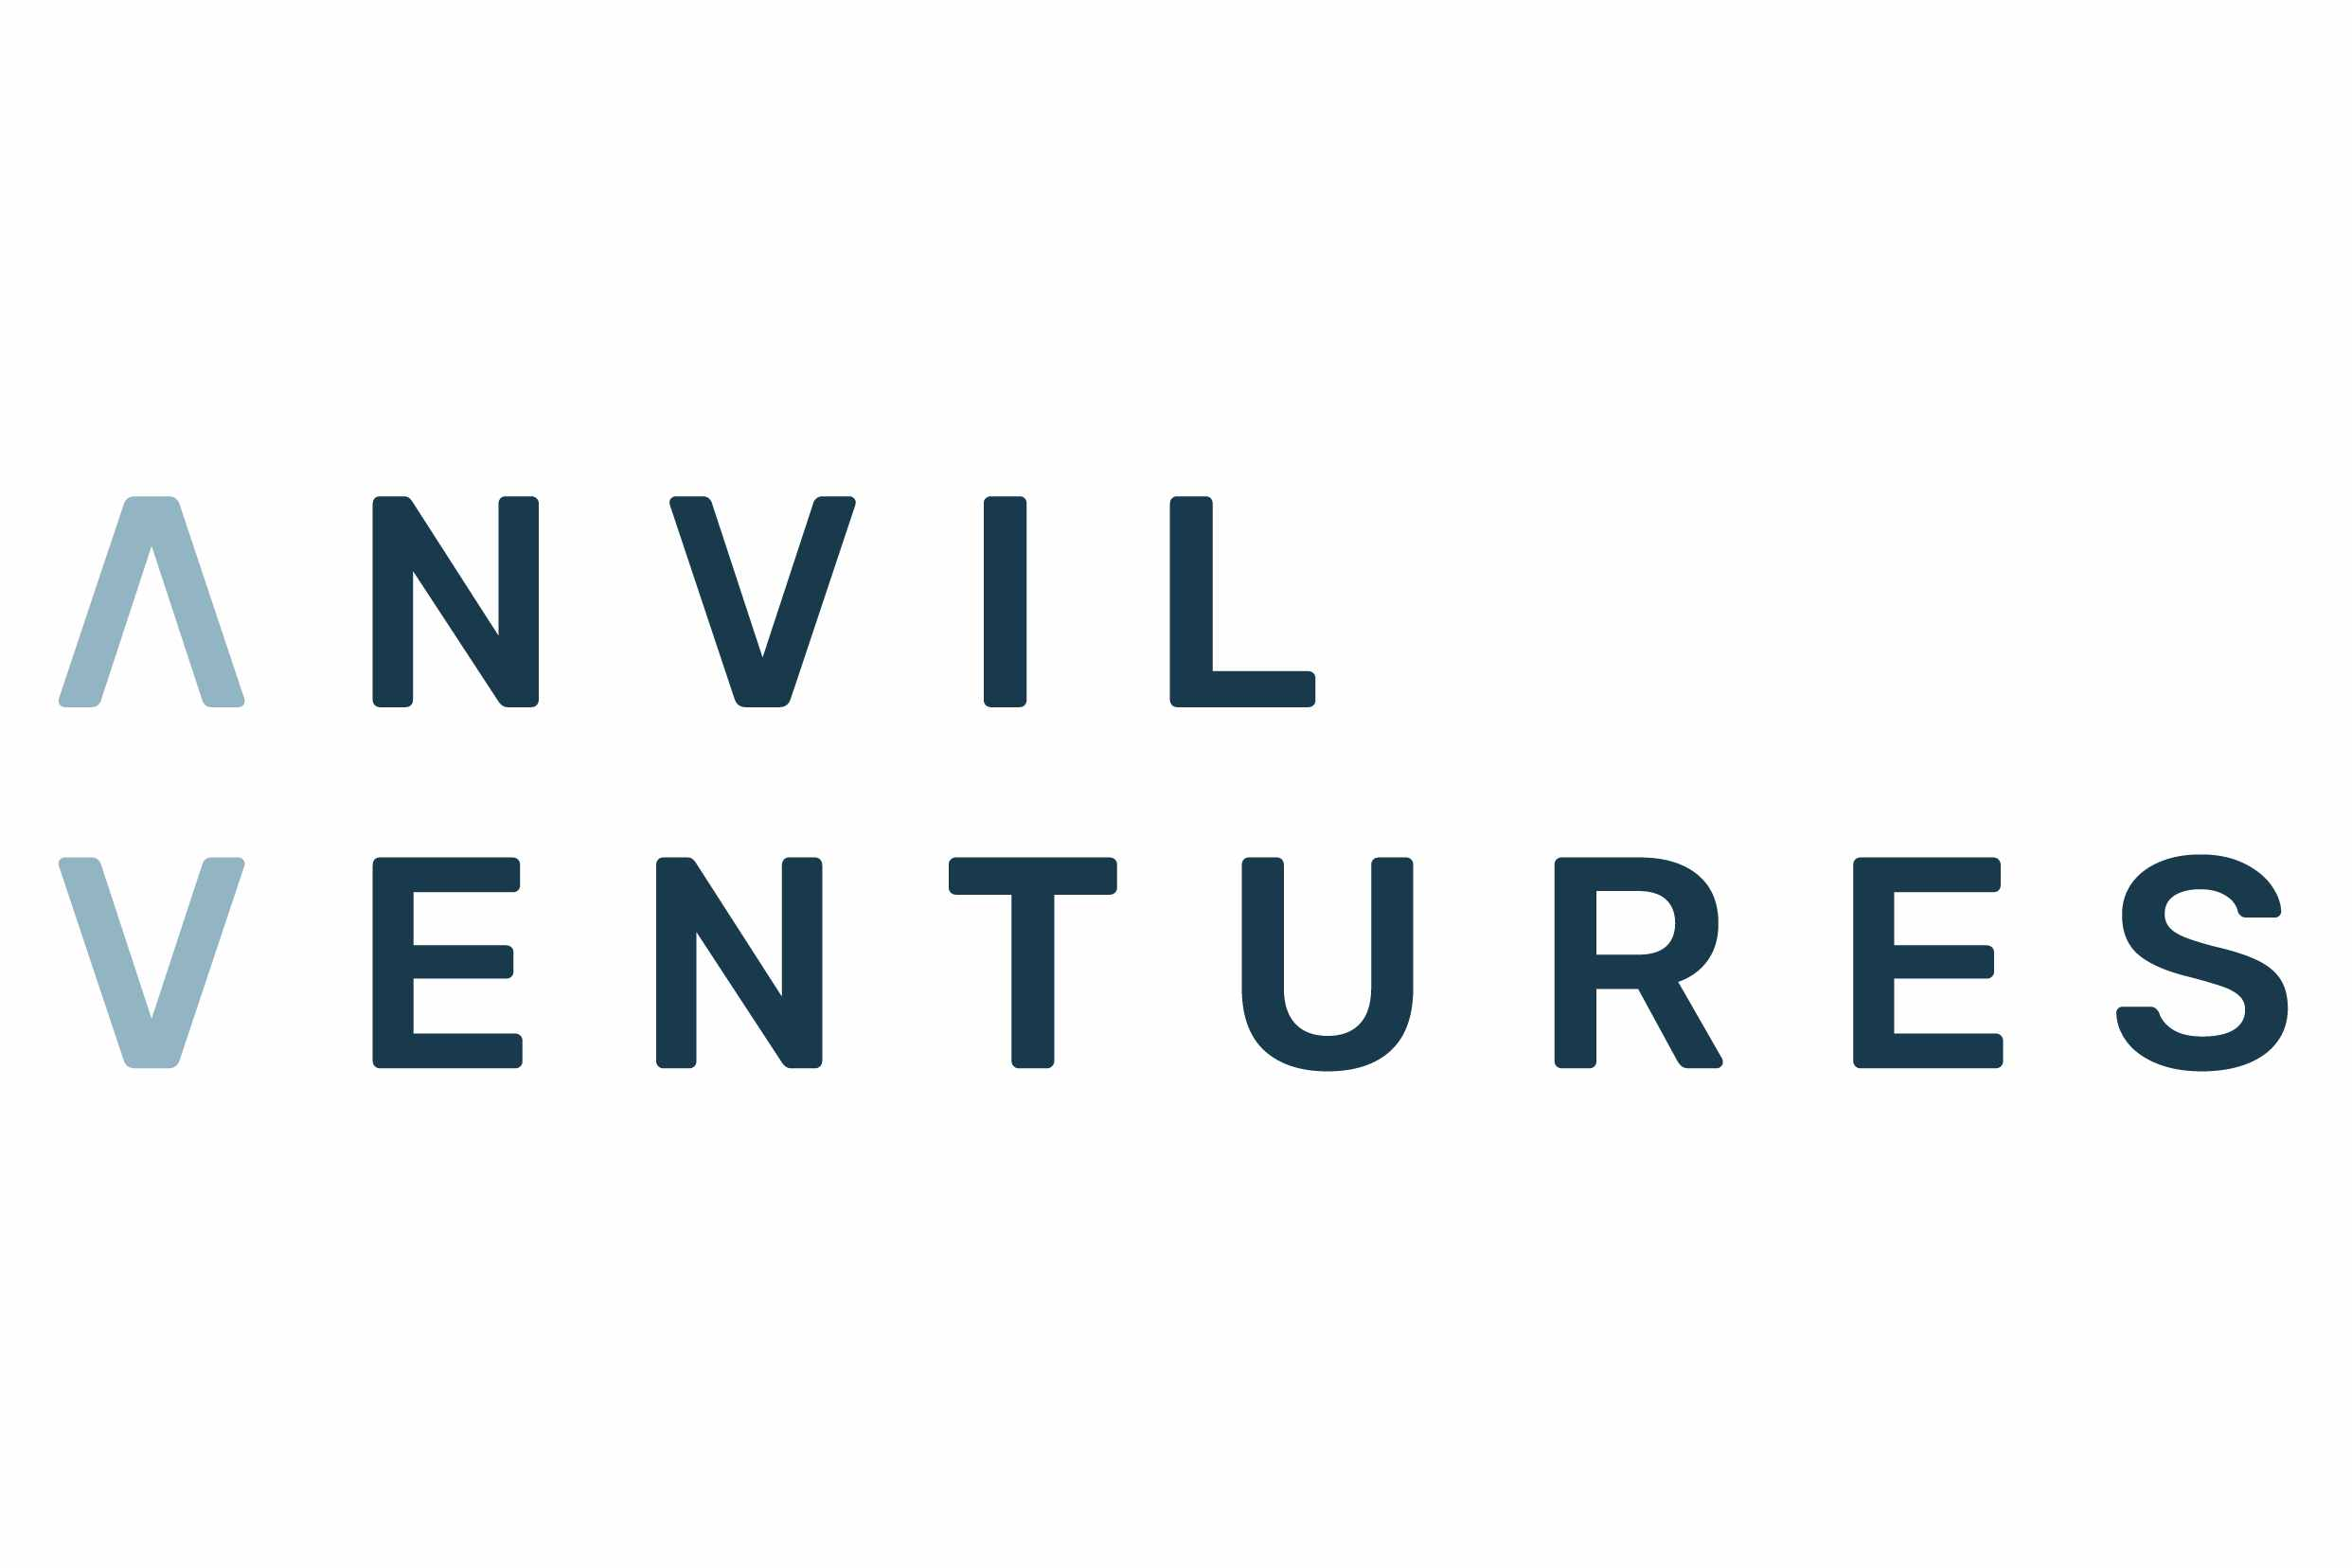 Introducing Anvil Ventures: An Information Security Consulting Partnership